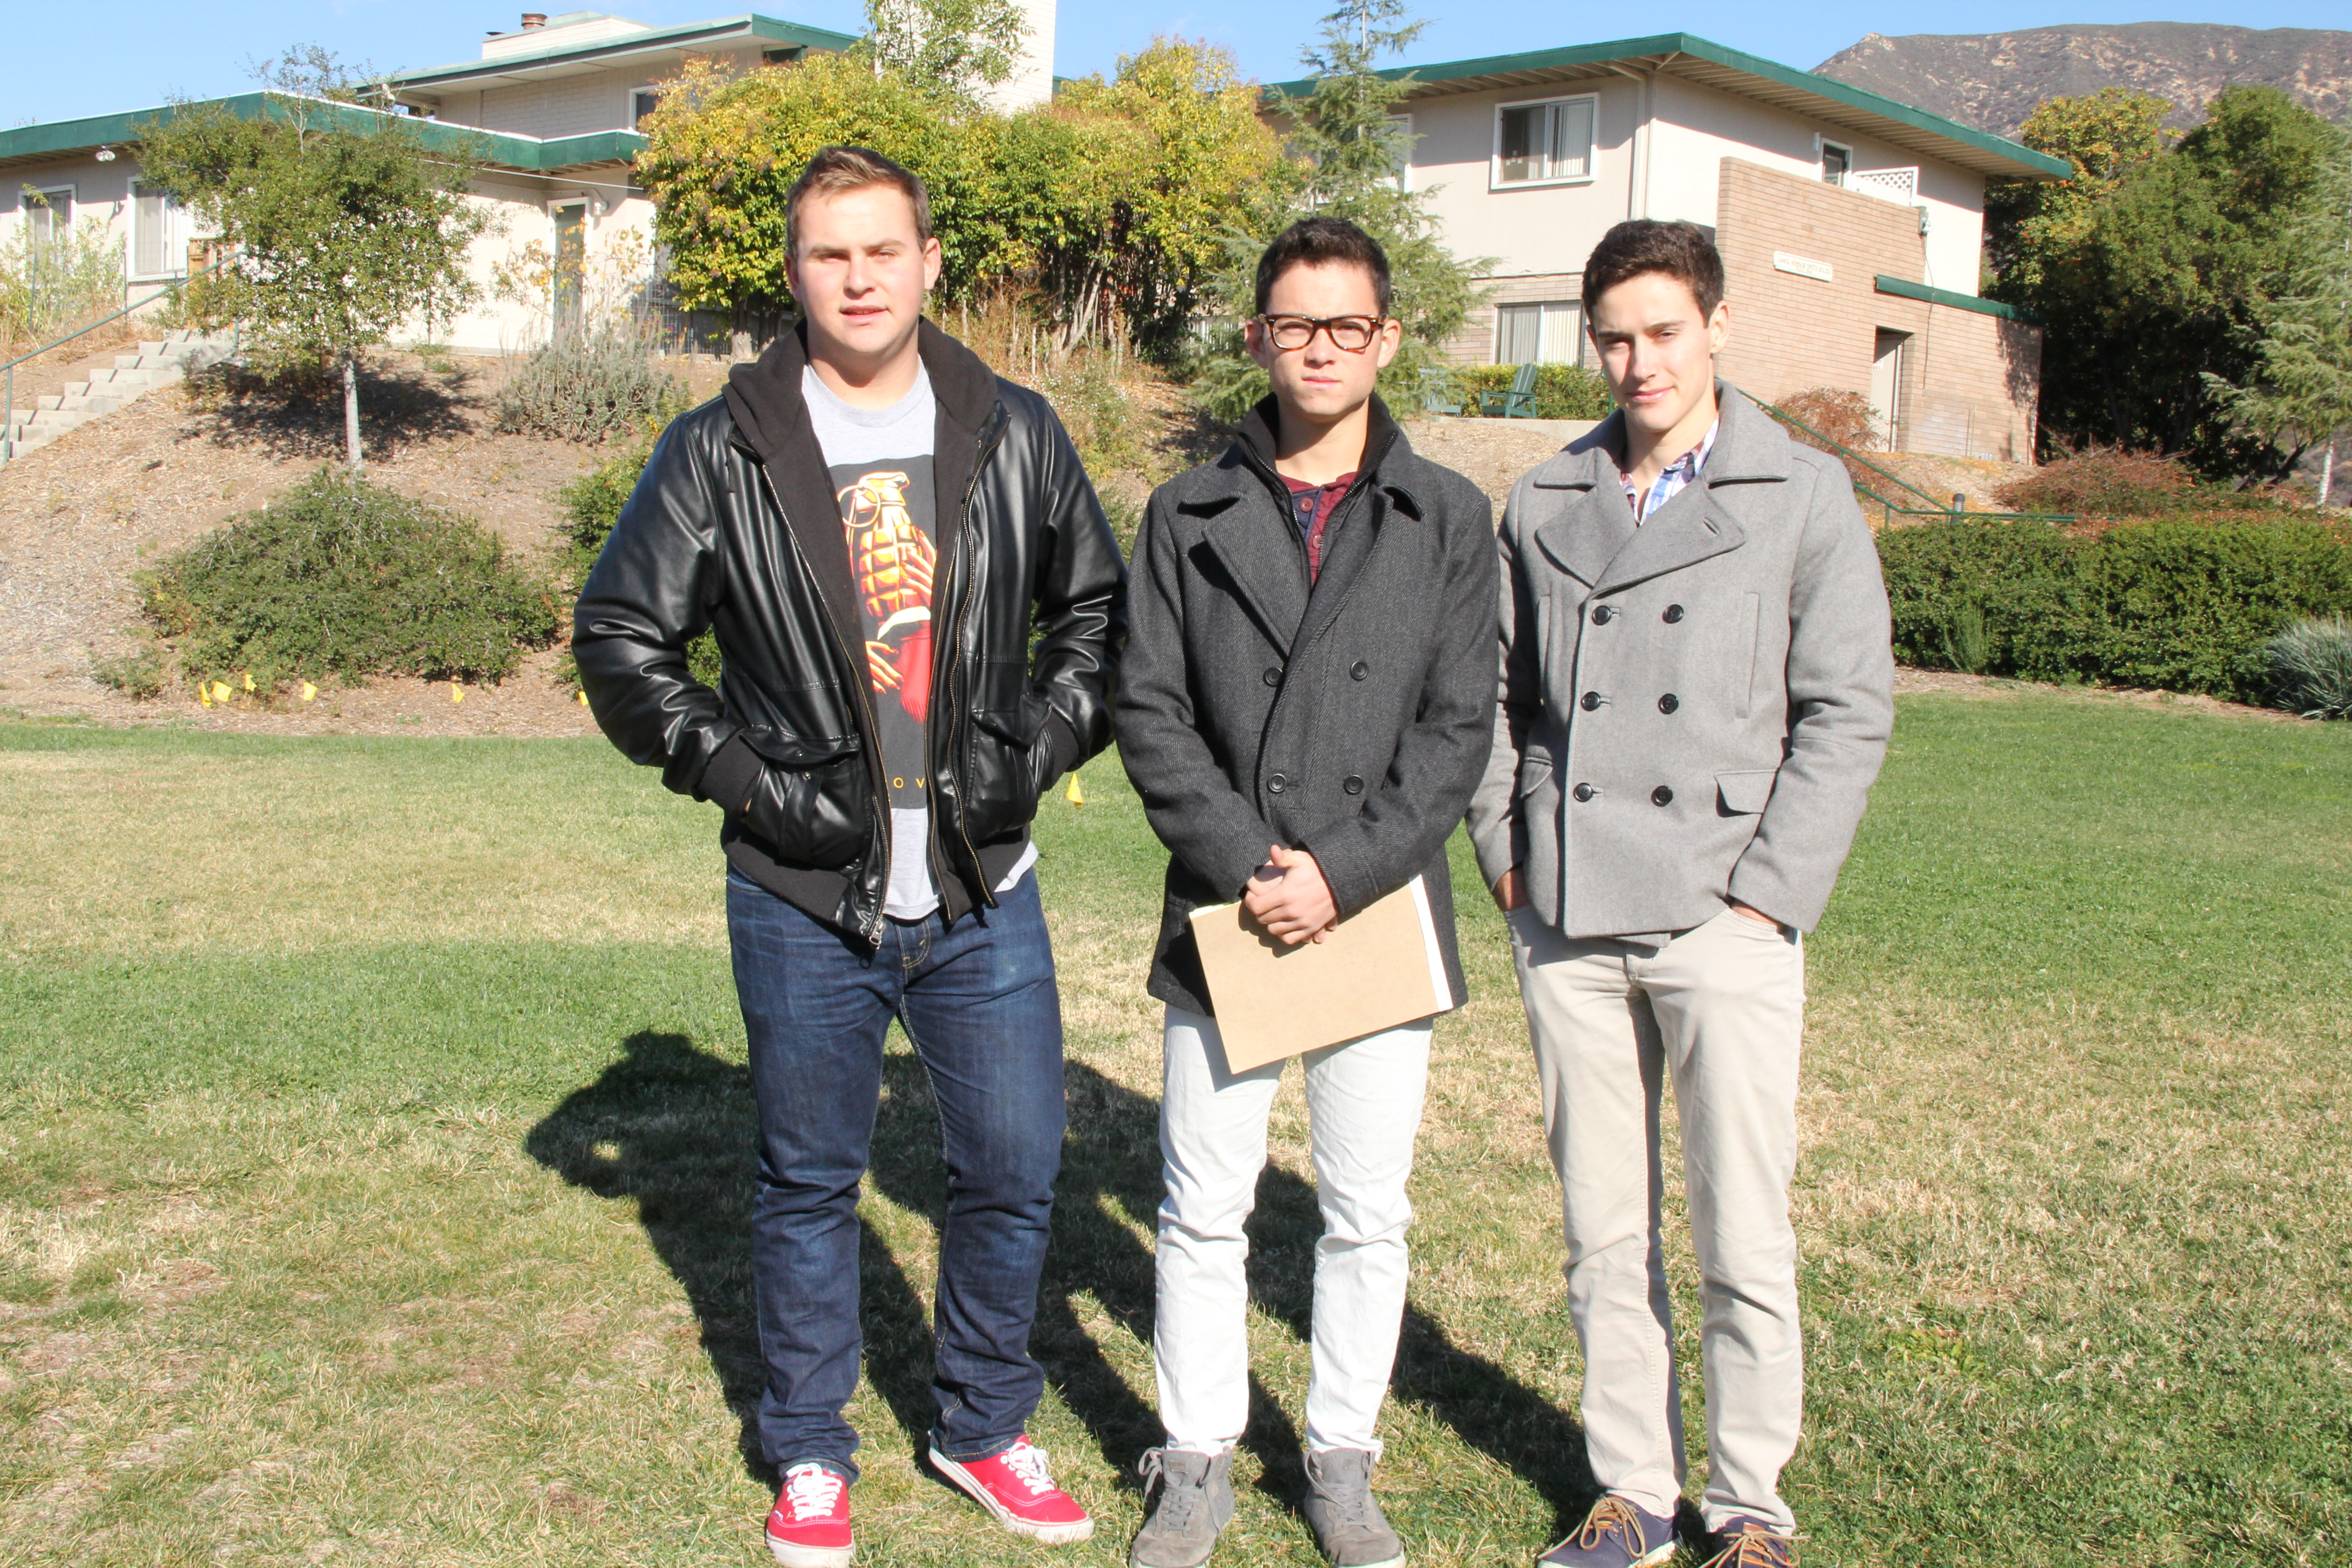 Left to right Keaton Shiffman, Masaki Takamatsu and Grant Spencer stand where ground may be broken to begin the construction of the new court